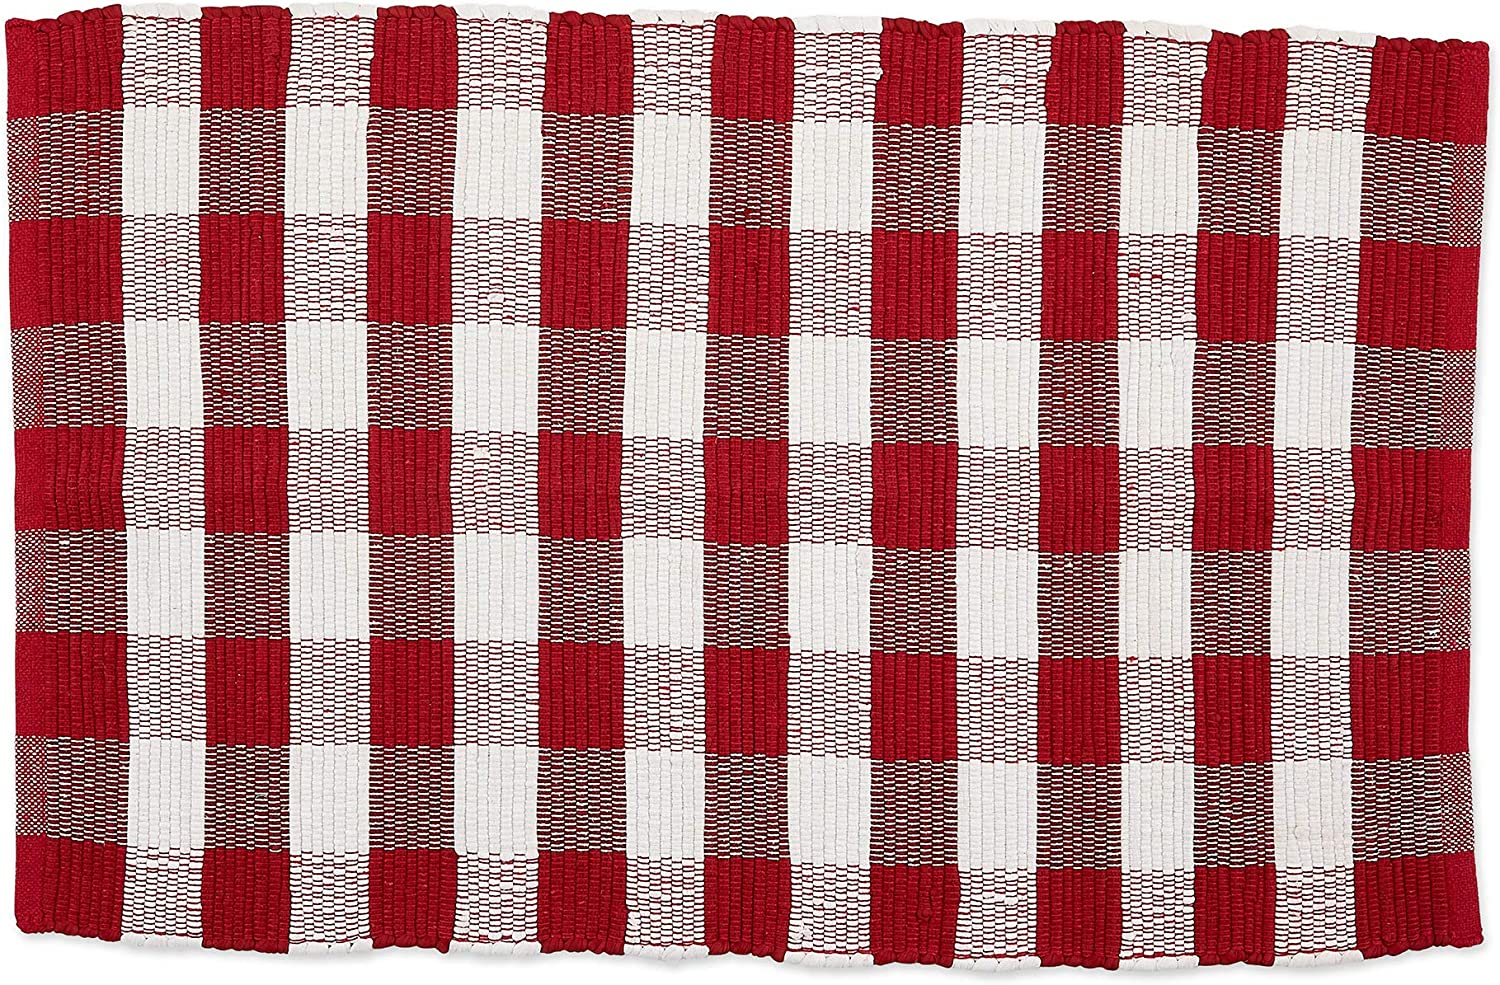 DII CAMZ11258 Indoor Handloomed Cotton Woven Reversible Buffalo Check Area Rug for Bedroom, Living Room, Kitchen, 26x40, Red & White